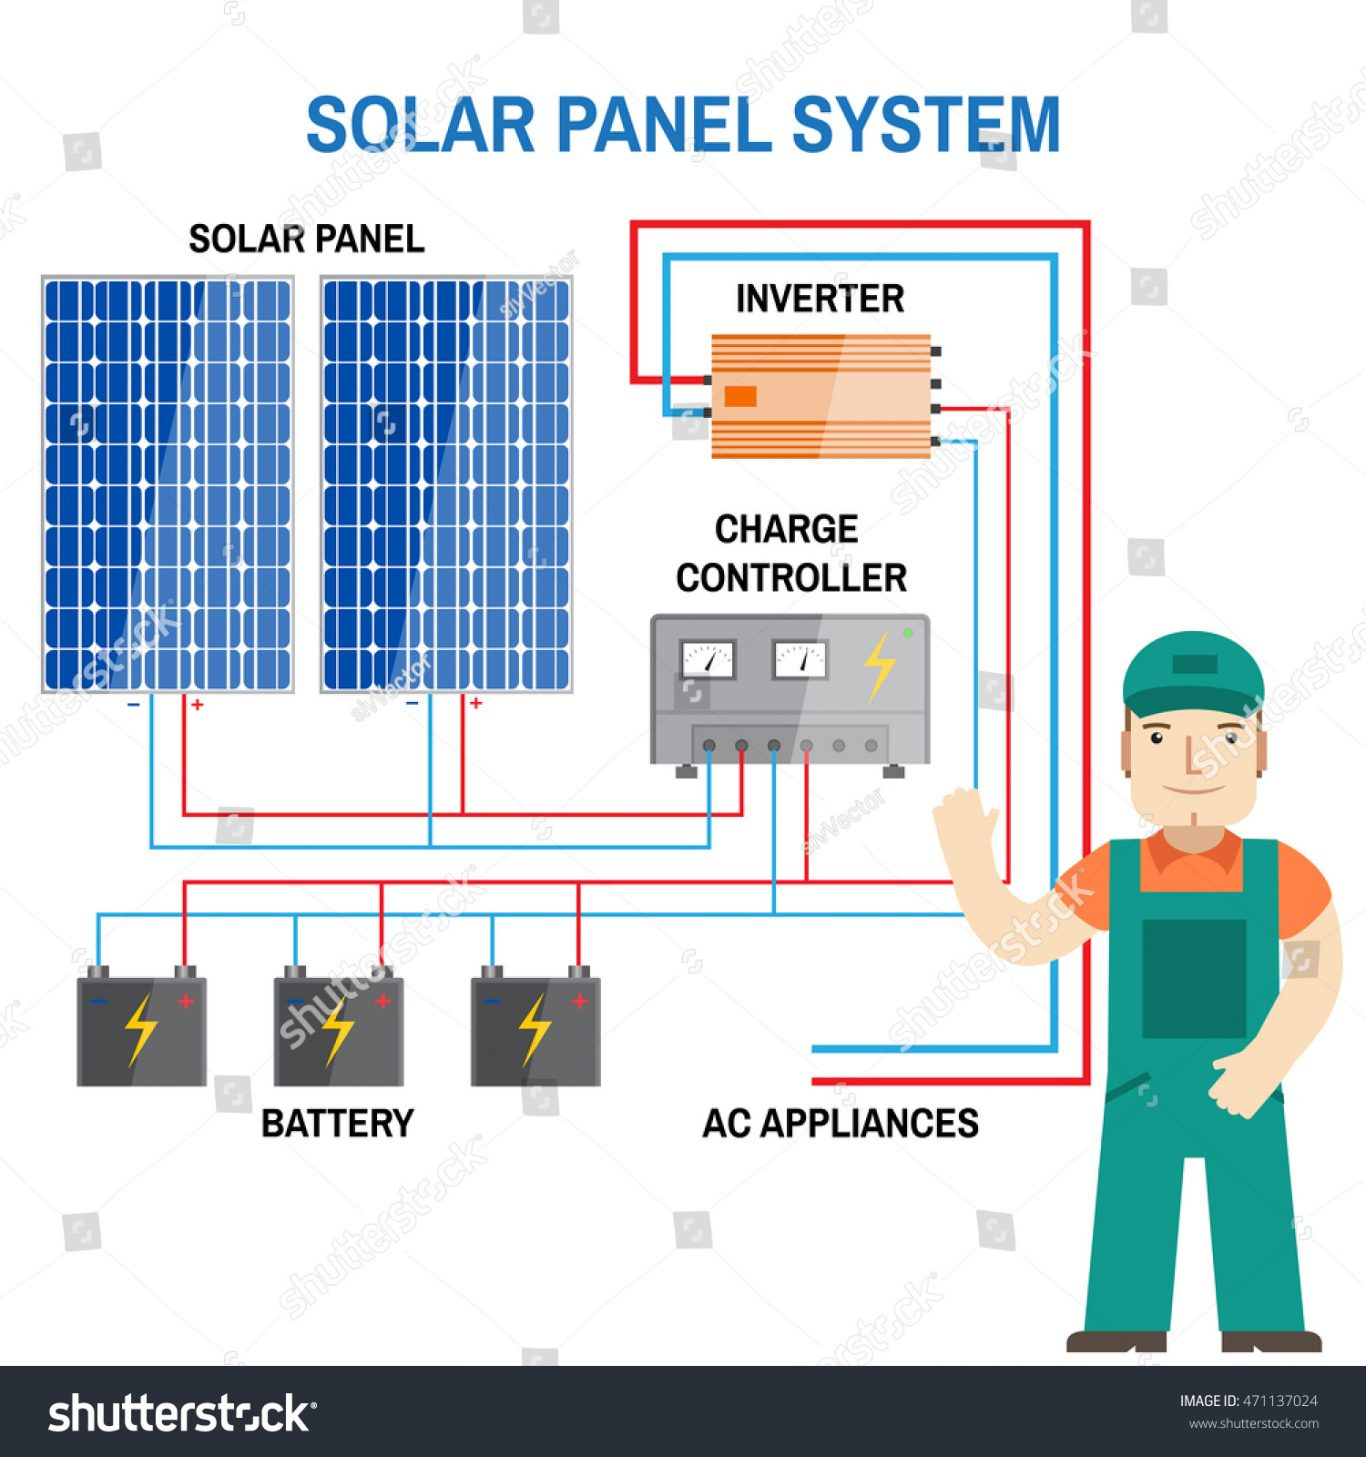 solar panel wiring diagram pdf Collection-Solar Panel Charge Controller Wiring Diagram Beautiful Excellent Simple solar Panel Diagram Contemporary Electrical 12-g